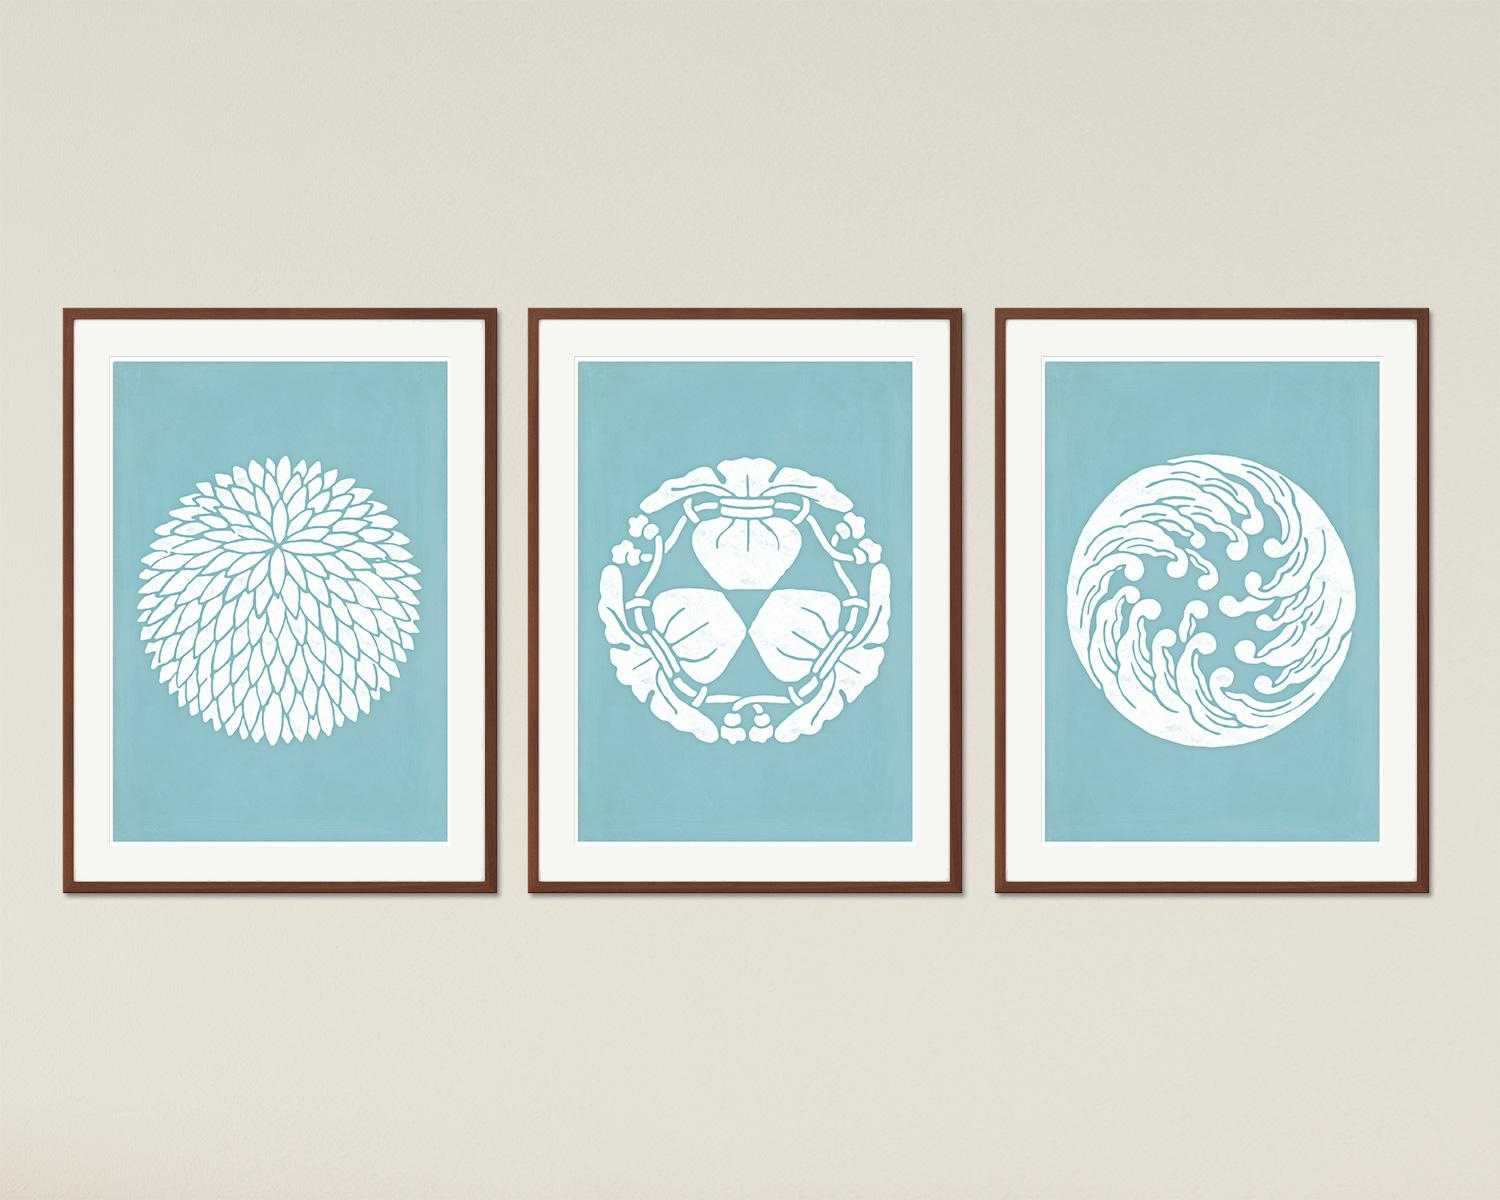 Japanese Designs – Minimalist Printable Poster Set, Asian Decor Throughout Asian Themed Wall Art (Image 11 of 20)